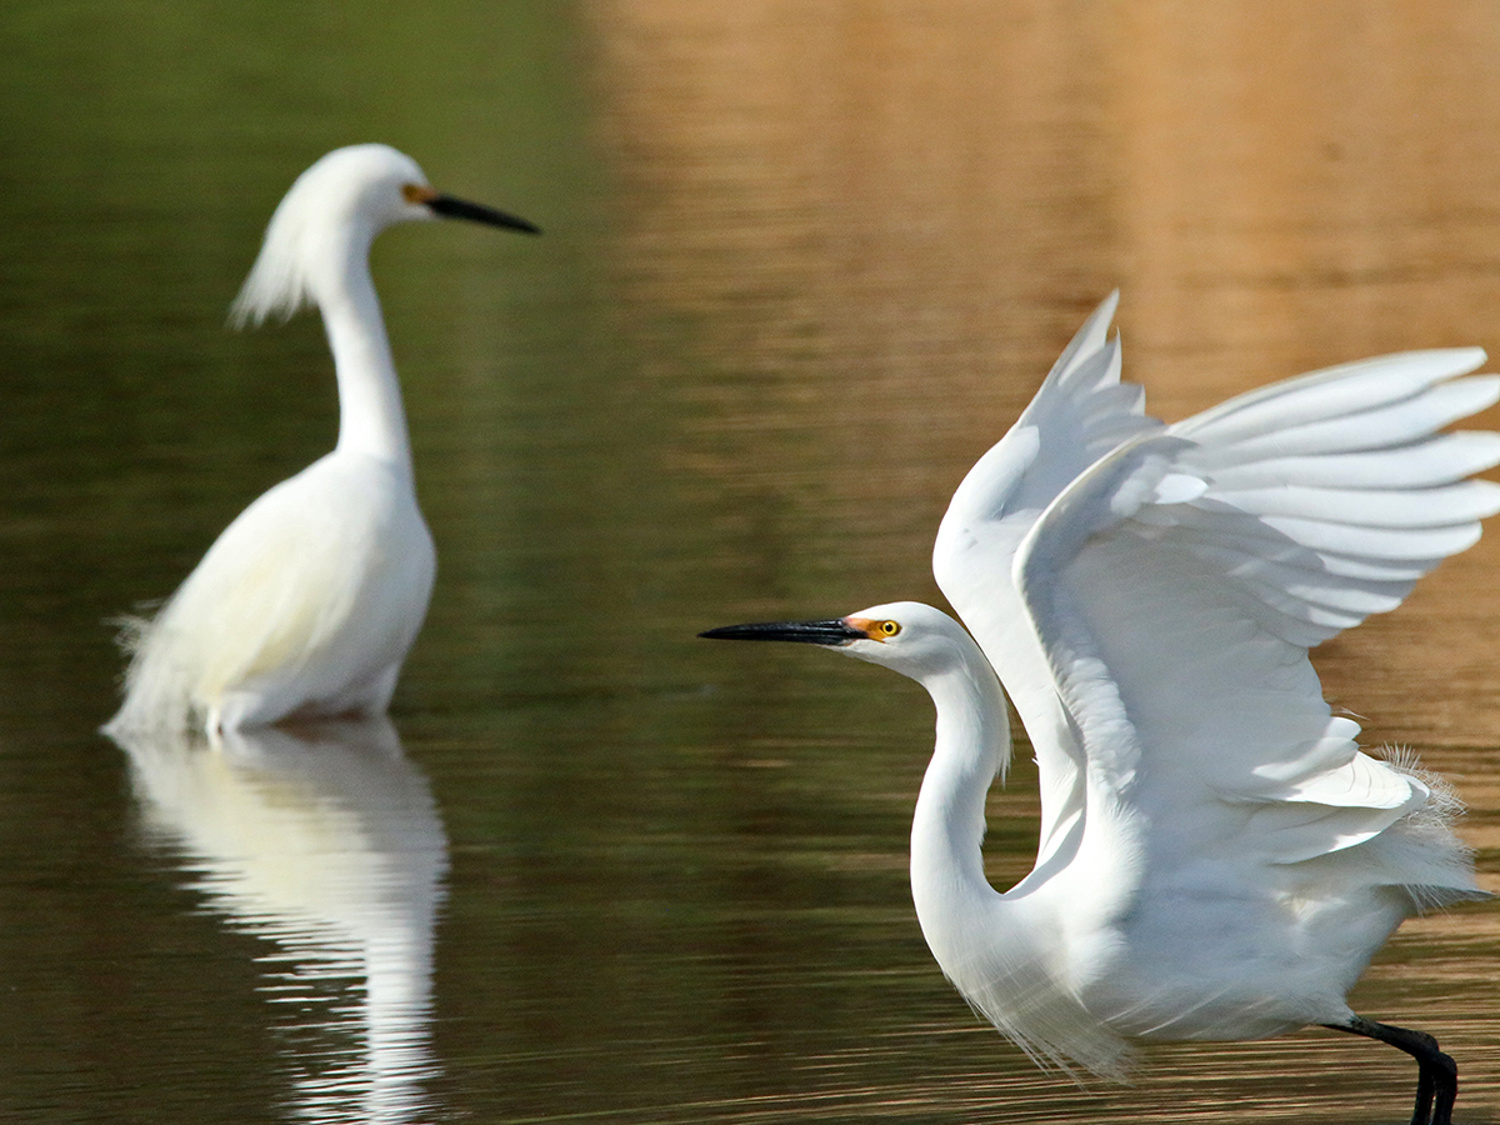 Snowy Egret Excitement—Natural Bridges State Park, CA